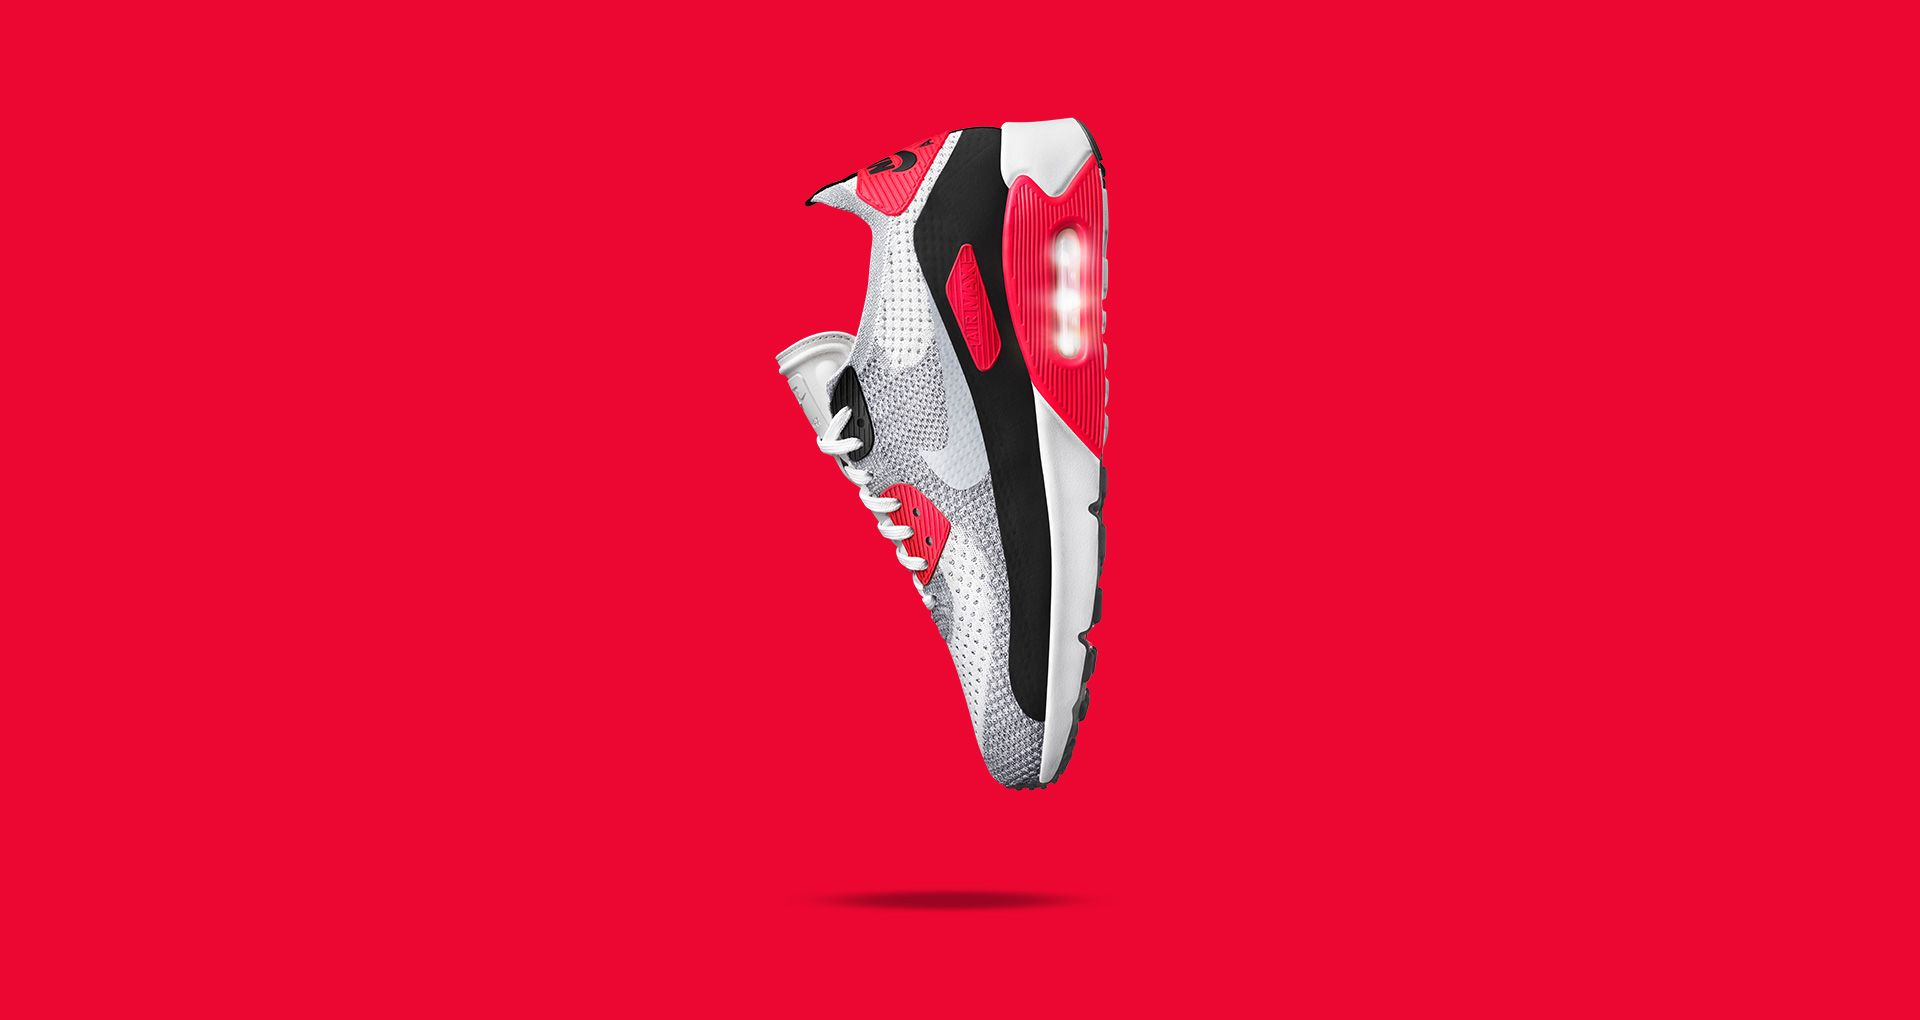 Nike Air Max 90 Ultra 2.0 Flyknit Bright Crimson Sneakers